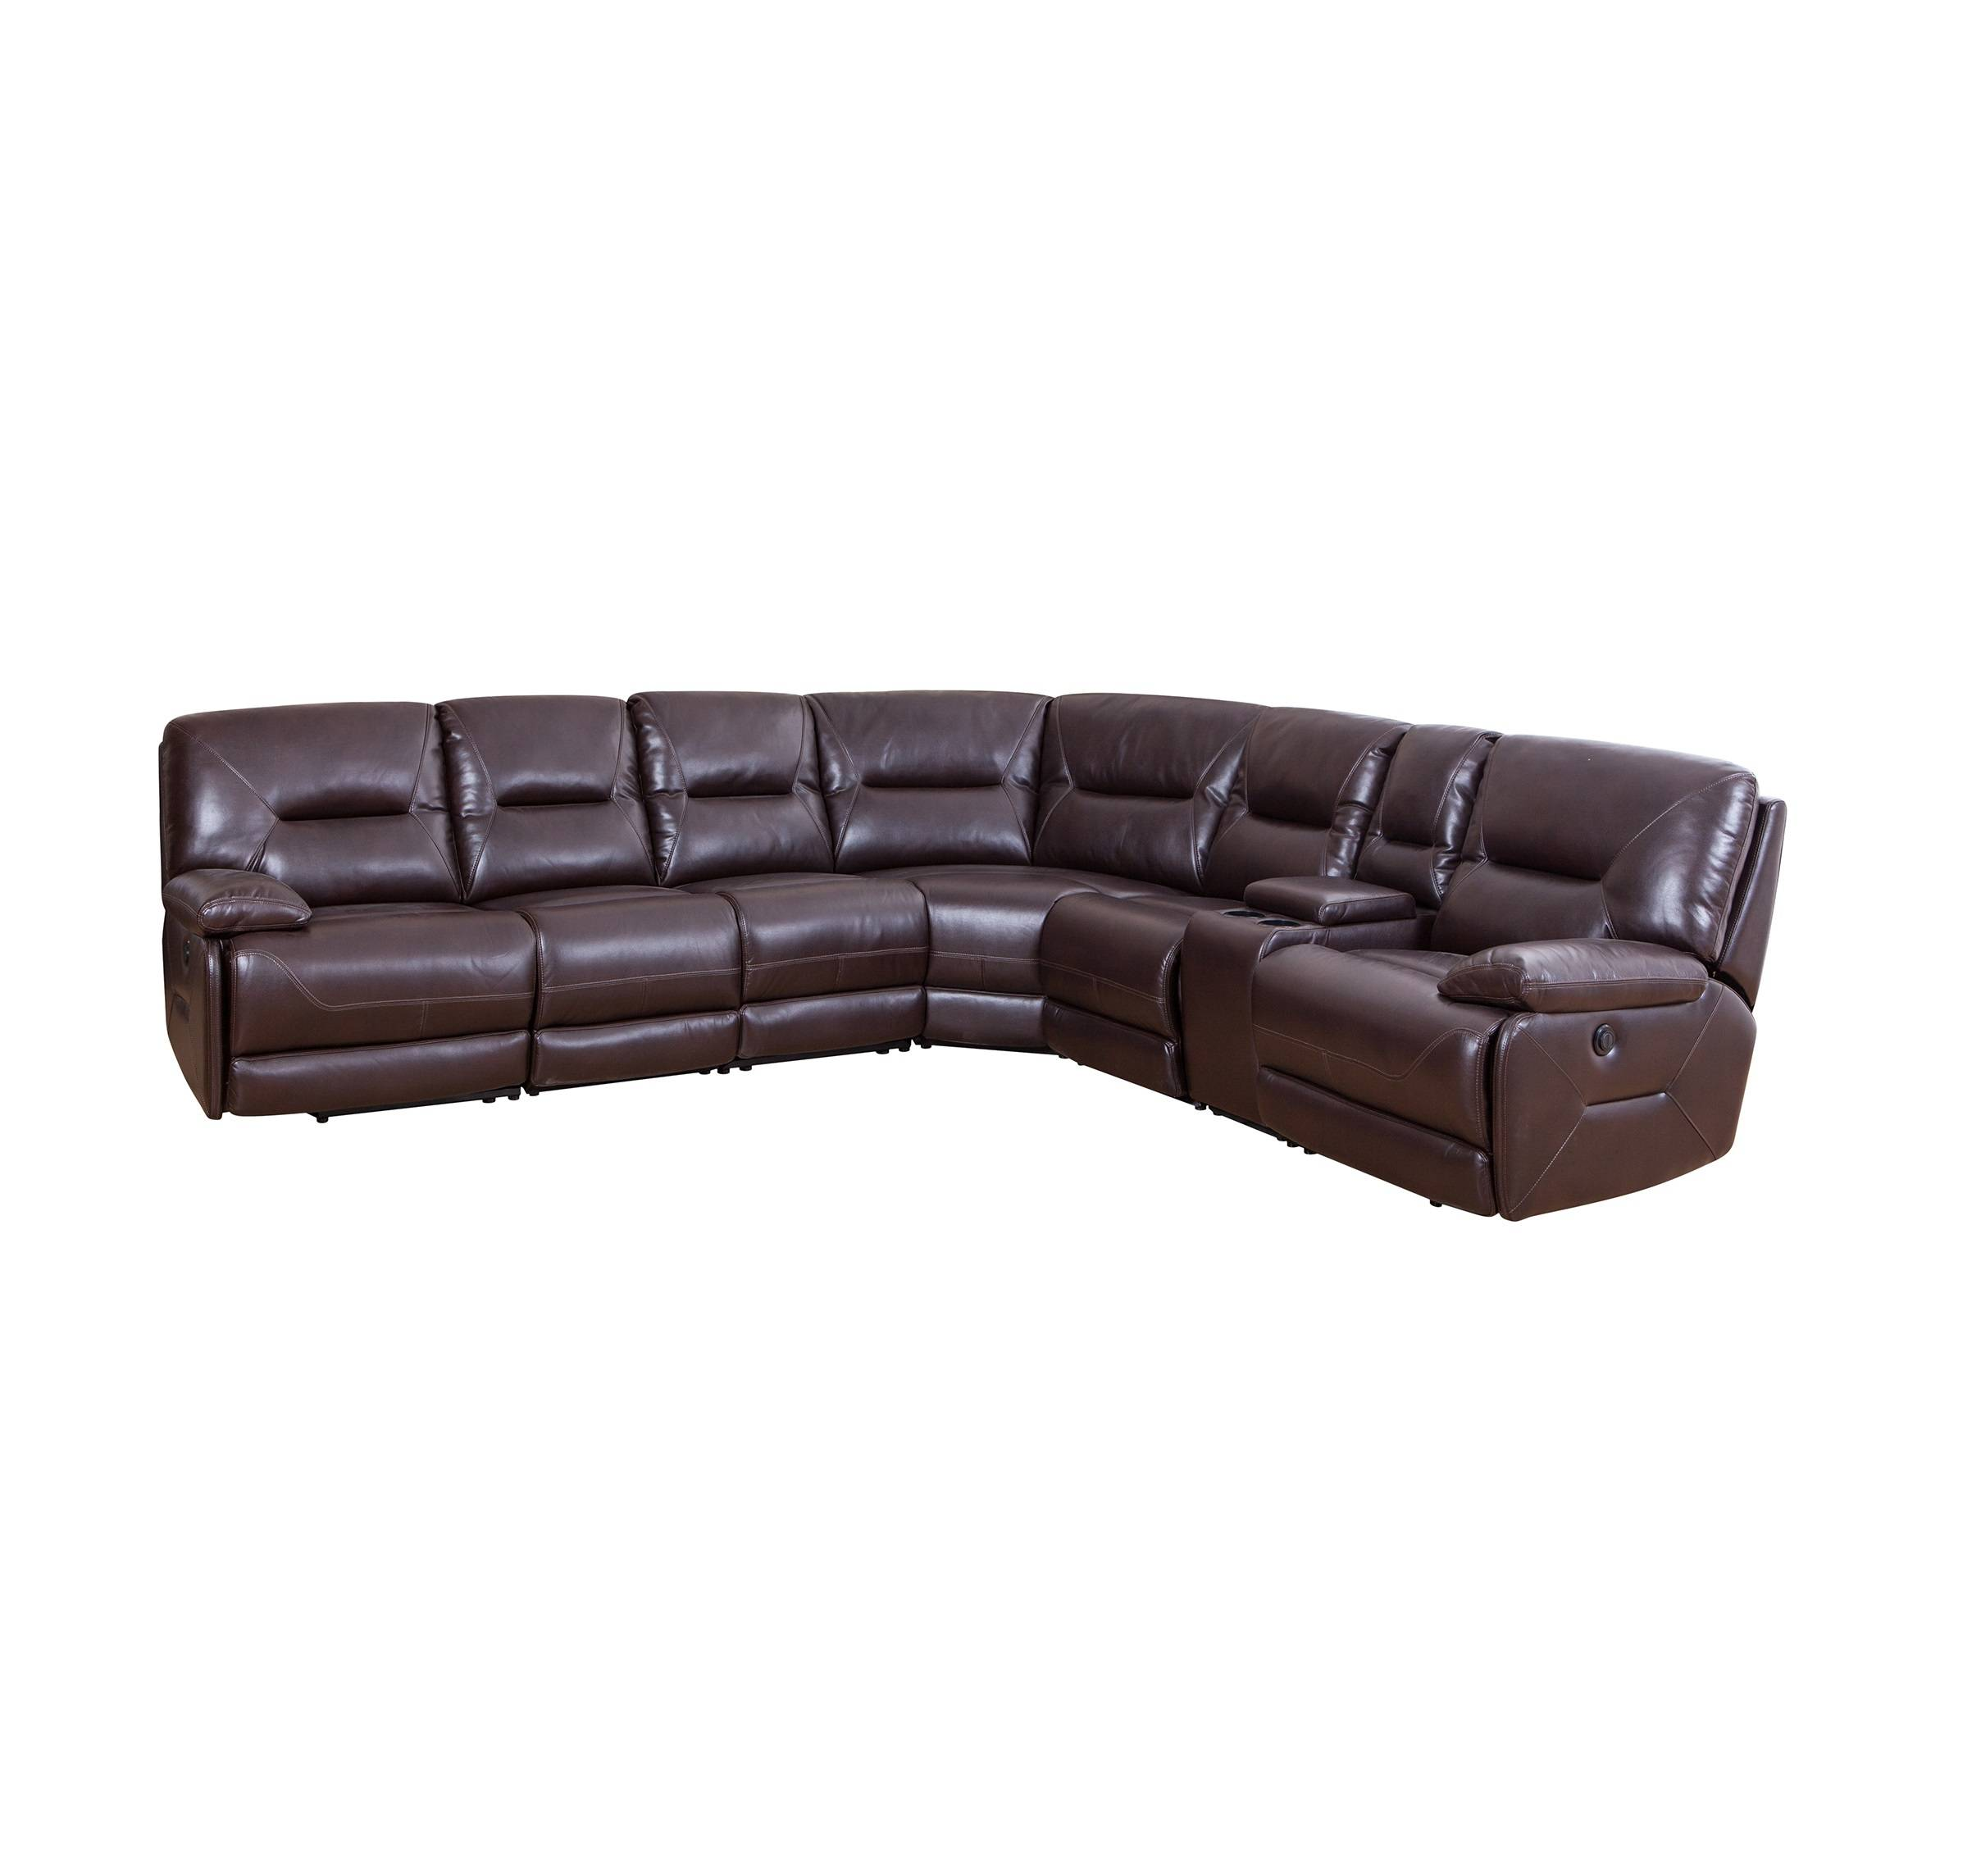 Royal living room furniture leather recliner sectional sofa with cup holder